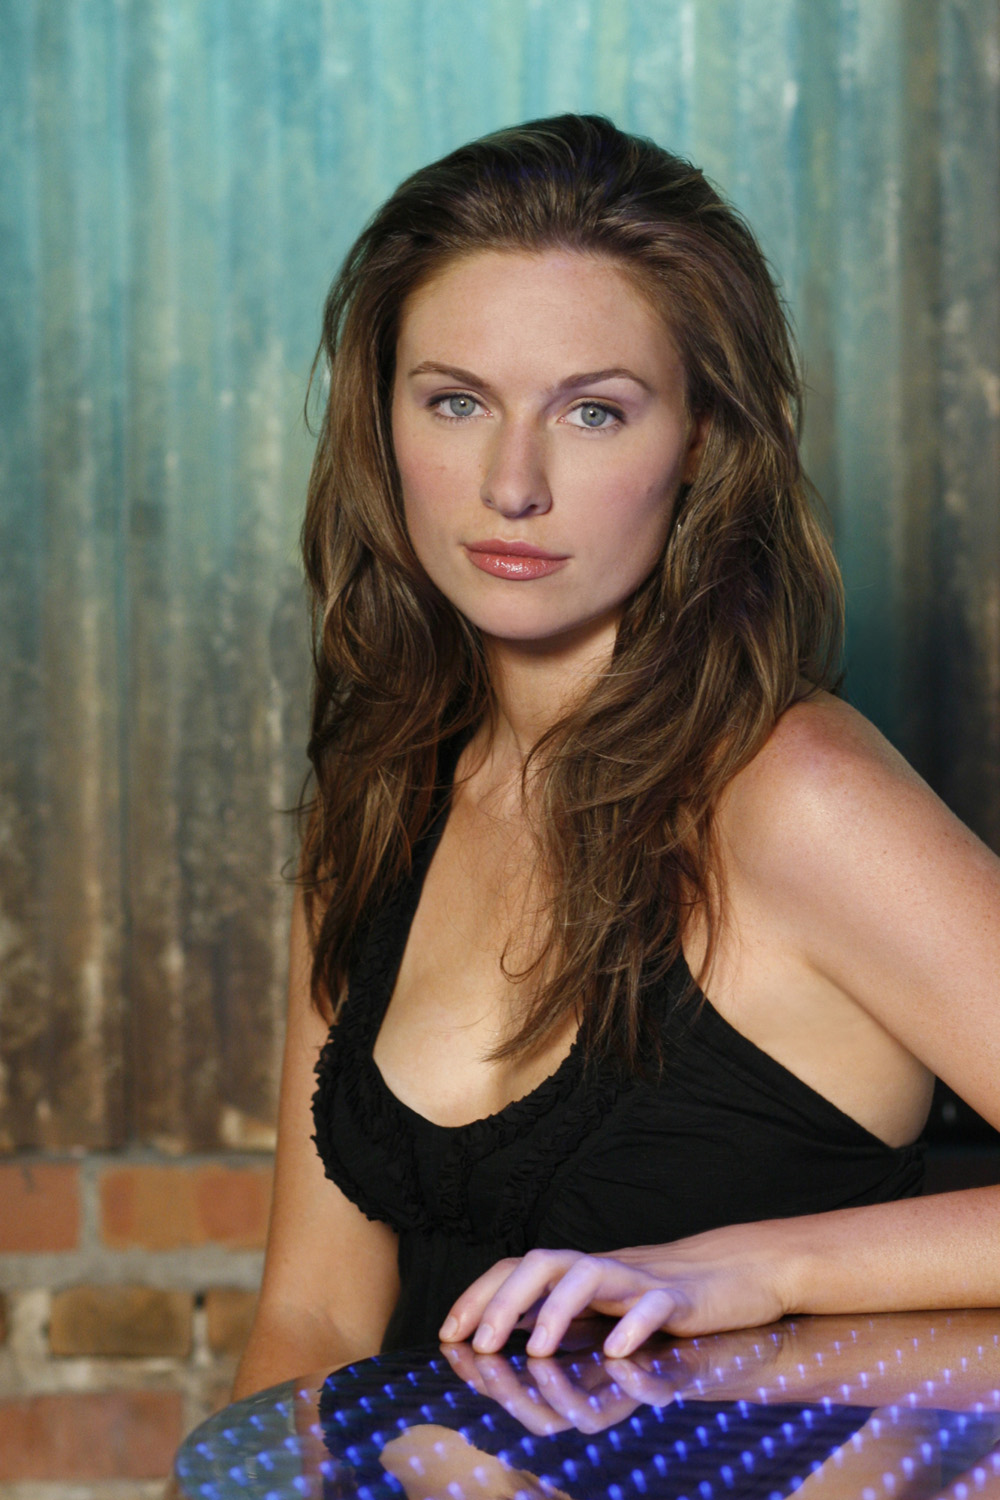 michaela mcmanus aquarius